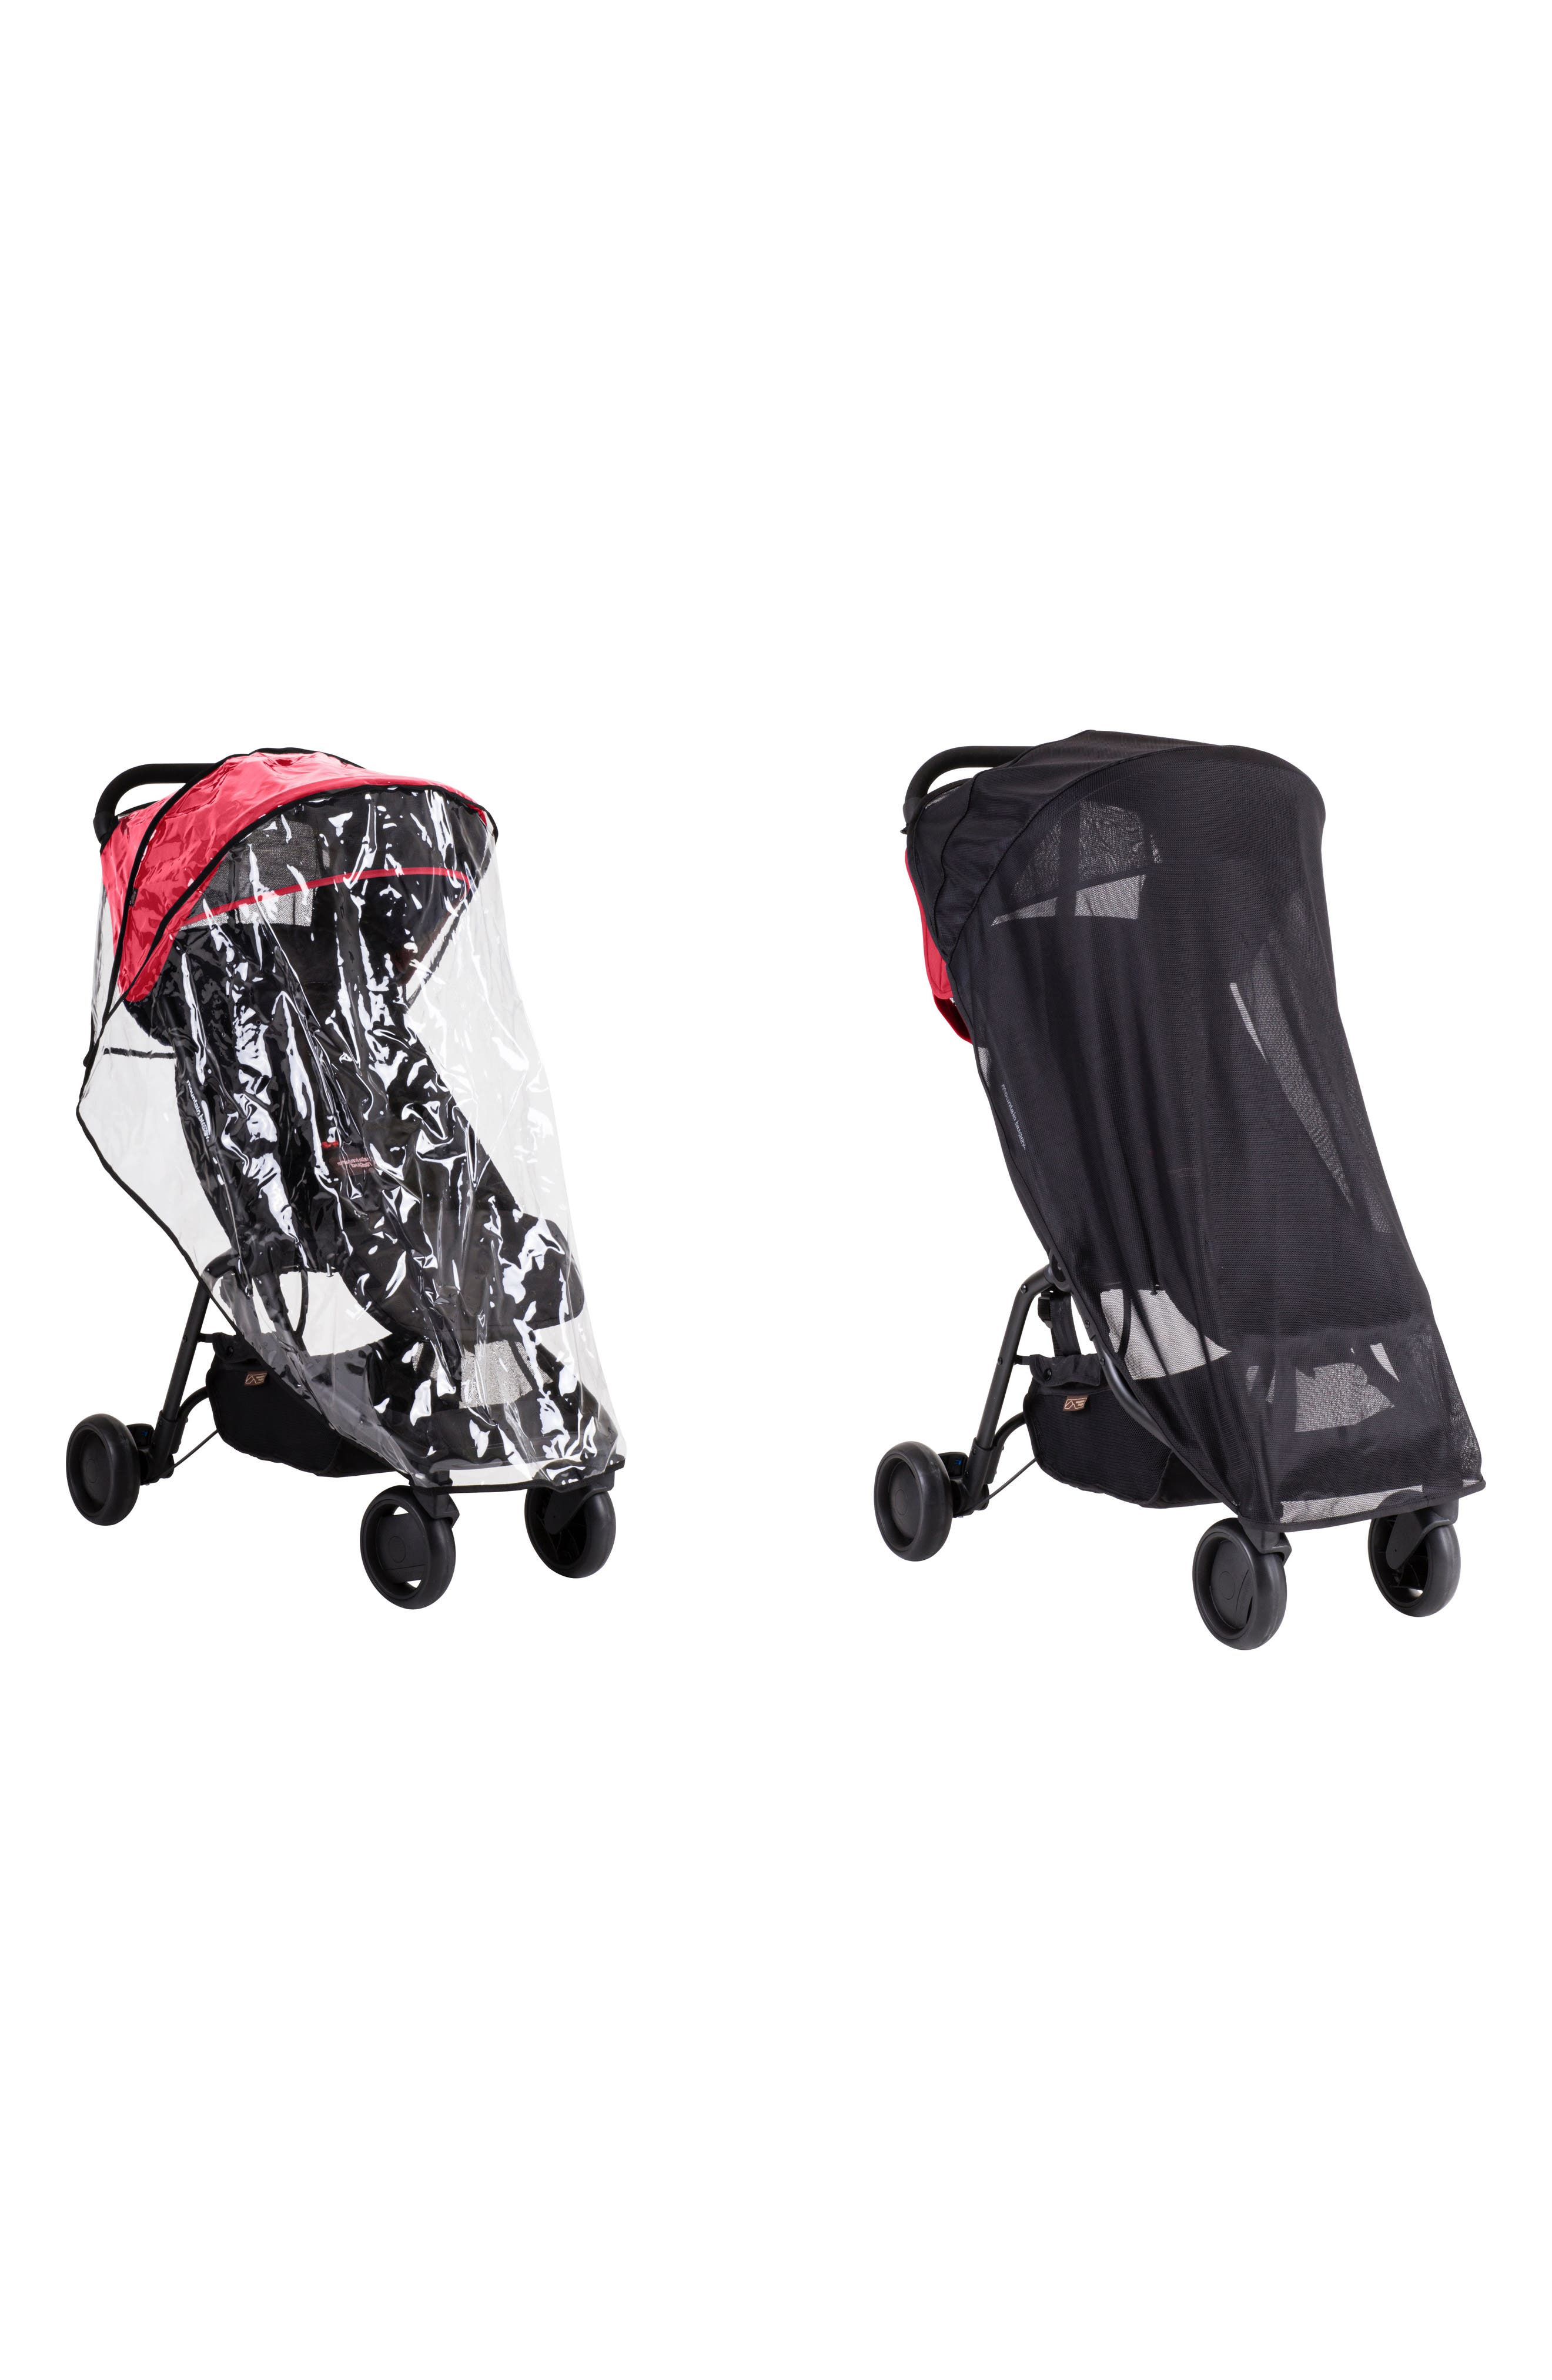 Alternate Image 1 Selected - mountain buggy Nano 2-Piece Mesh & Rain Cover Set